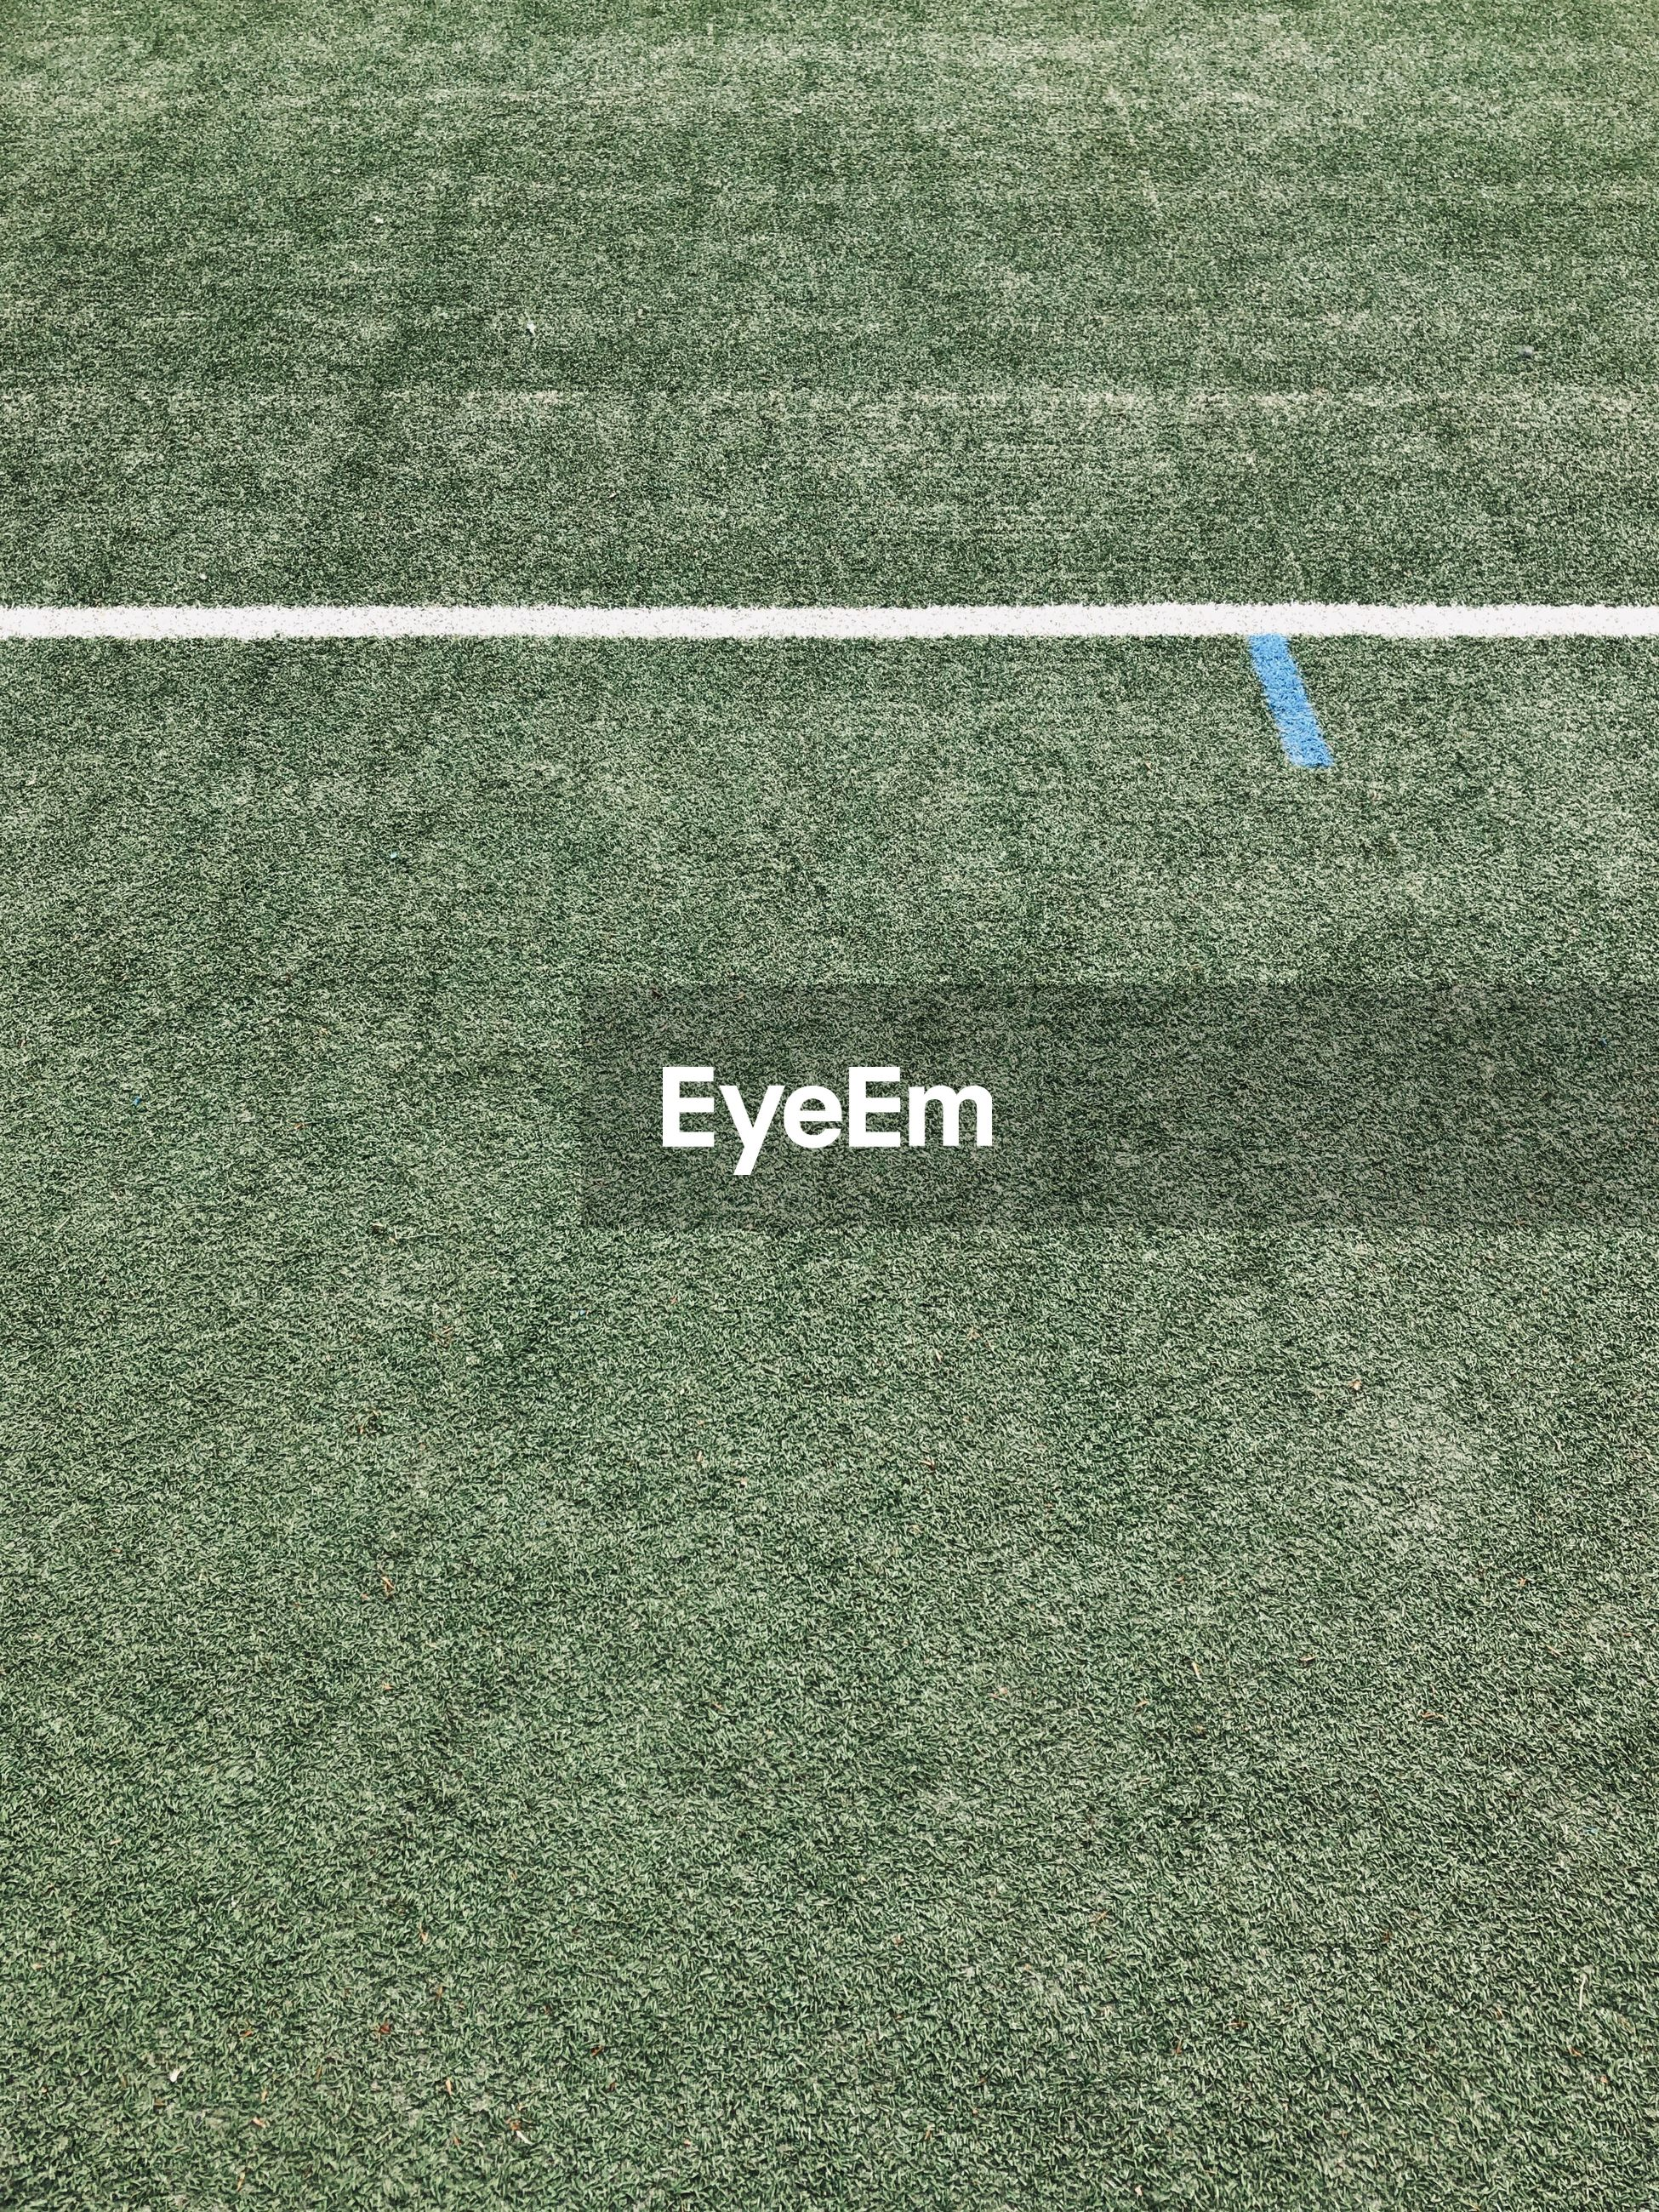 HIGH ANGLE VIEW OF SOCCER FIELD AND SHADOW ON THE GROUND